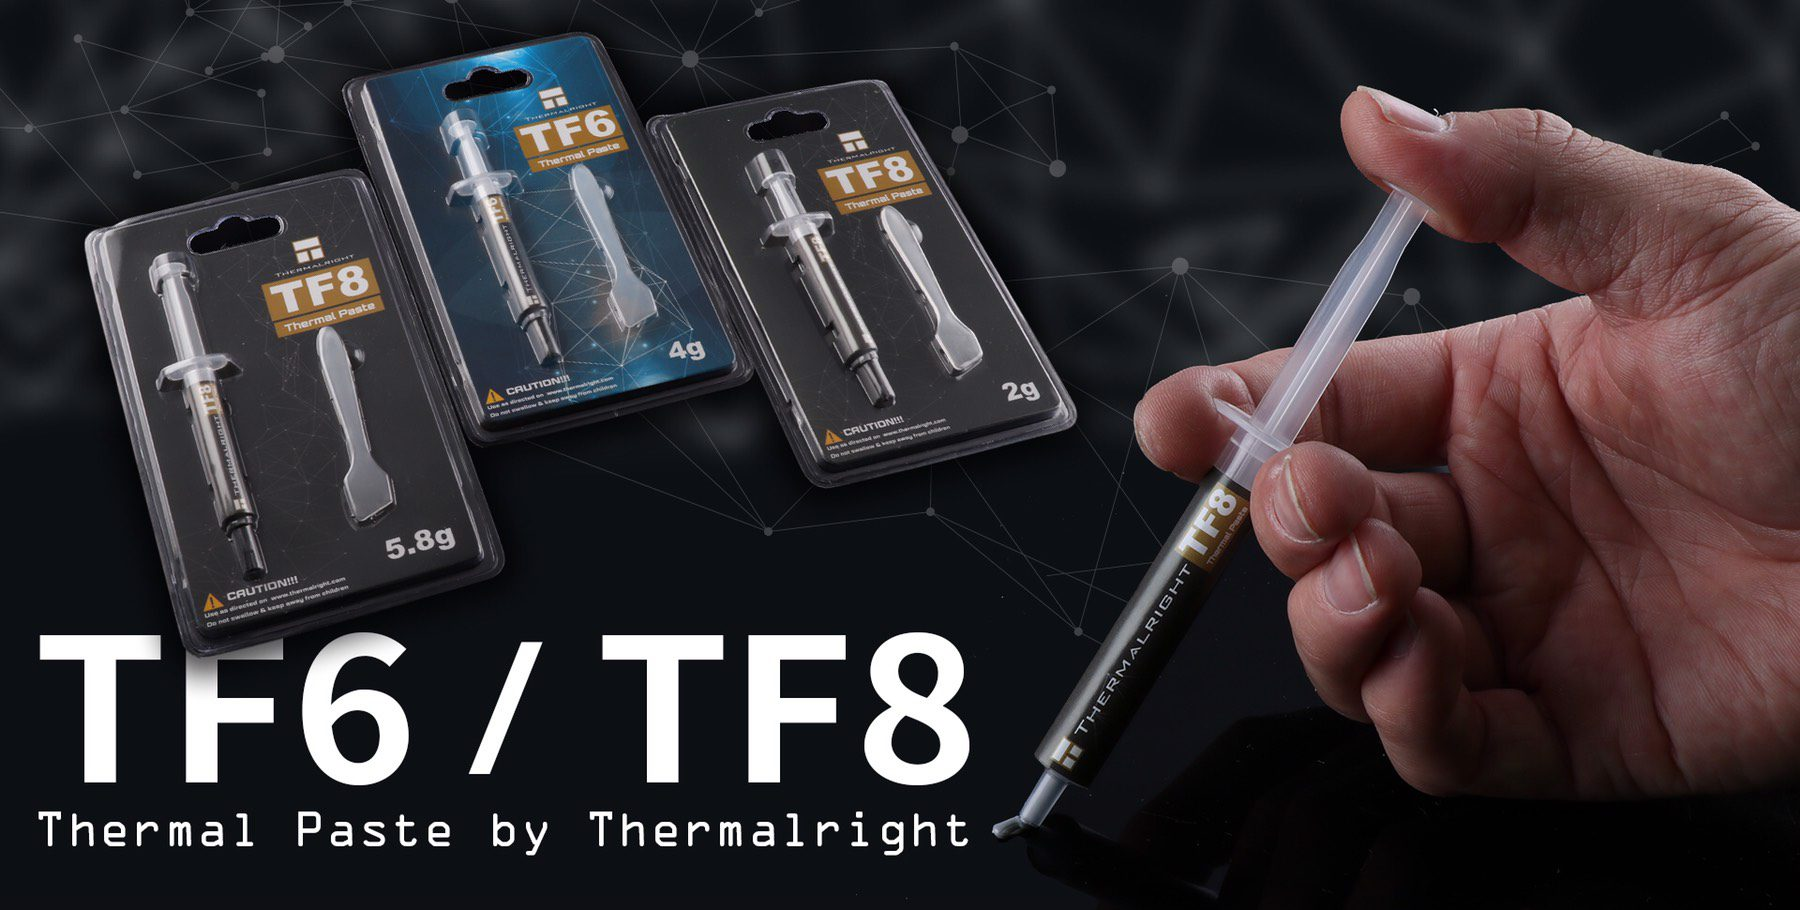 TF6/TF8 thermal paste